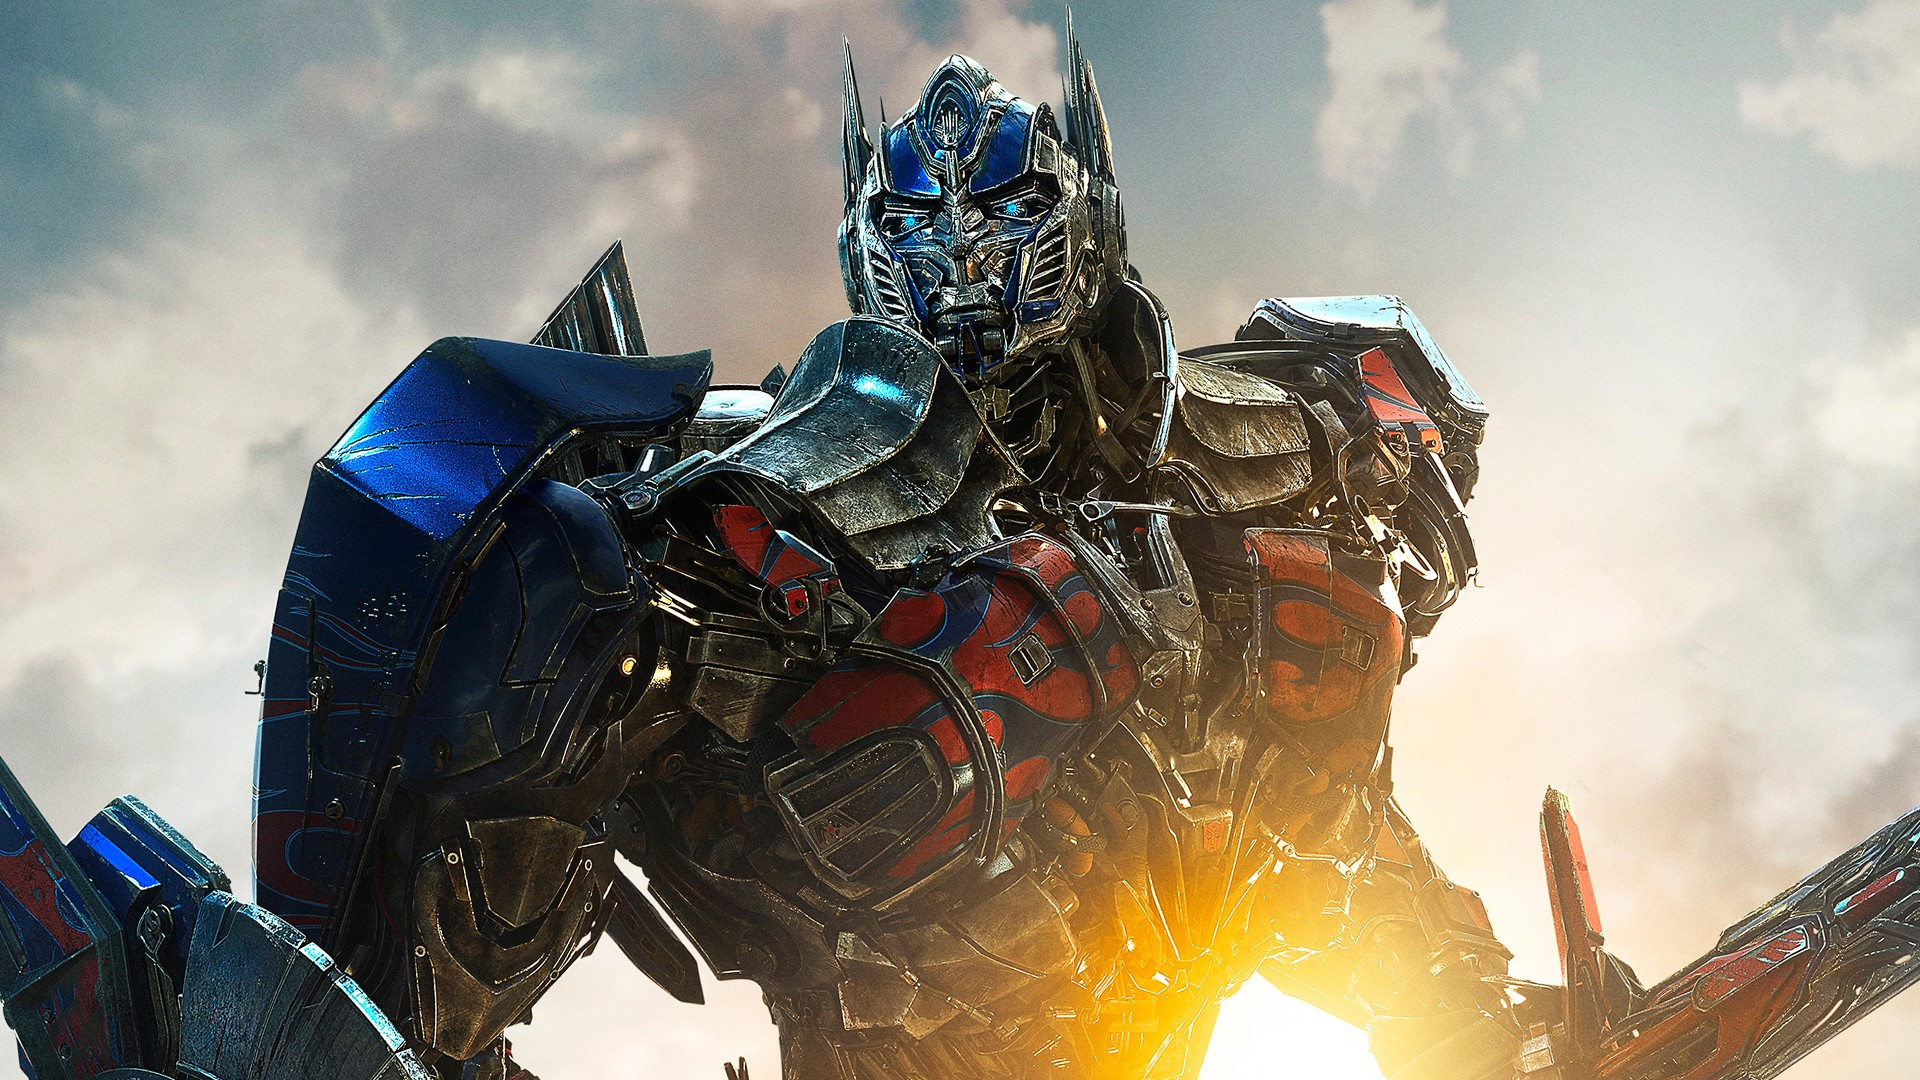 Hd wallpaper transformers 4 - Transformers Age Of Extinction Bilgisayar Duvar Ka Tlar